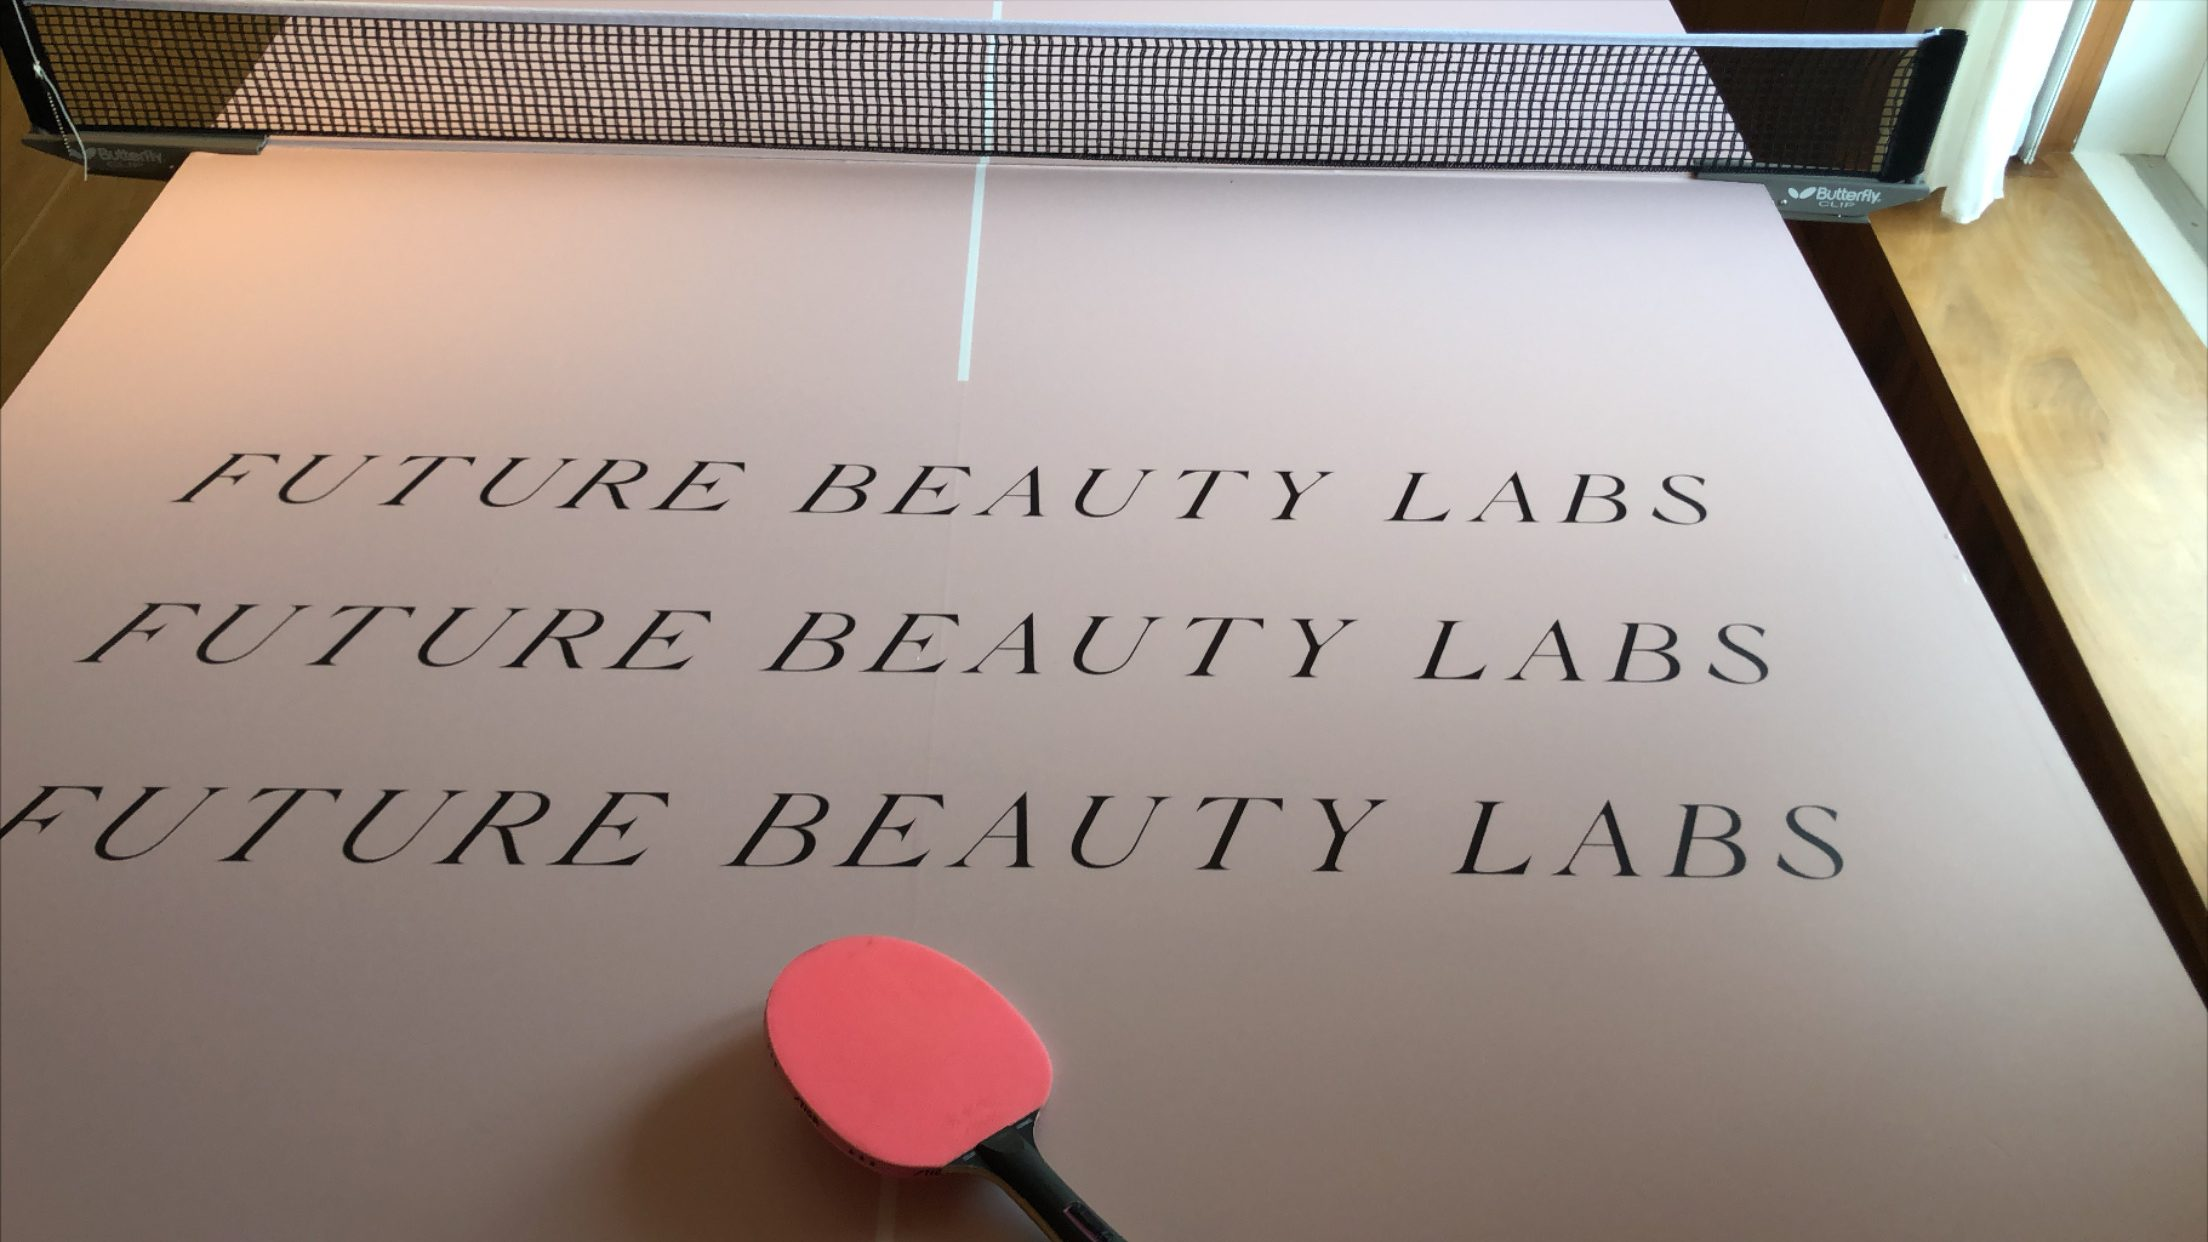 Future Beauty Labs branded table tennis